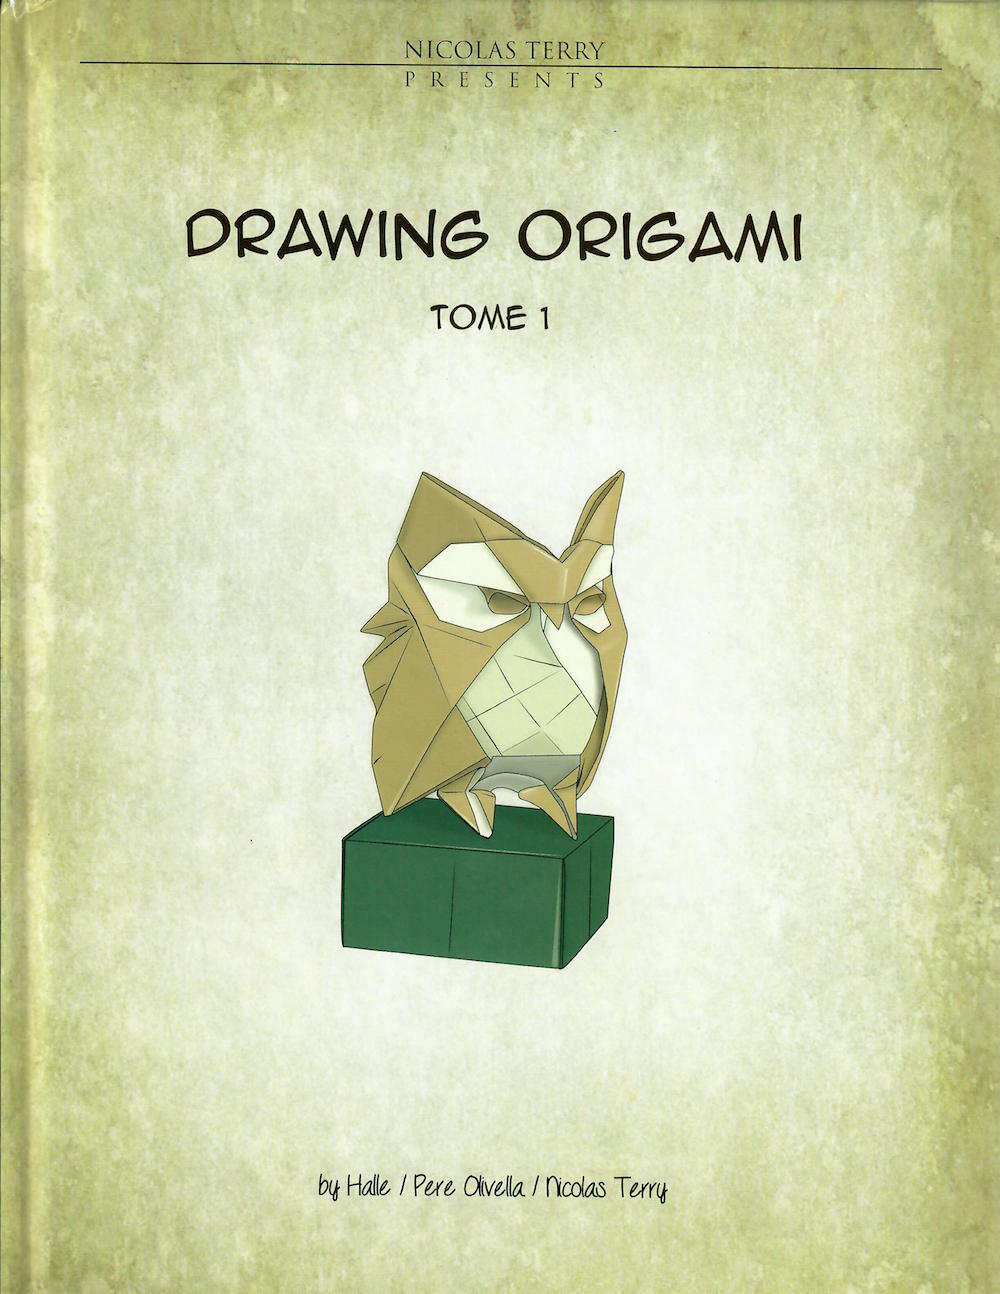 Drawing Origami Vol. 1